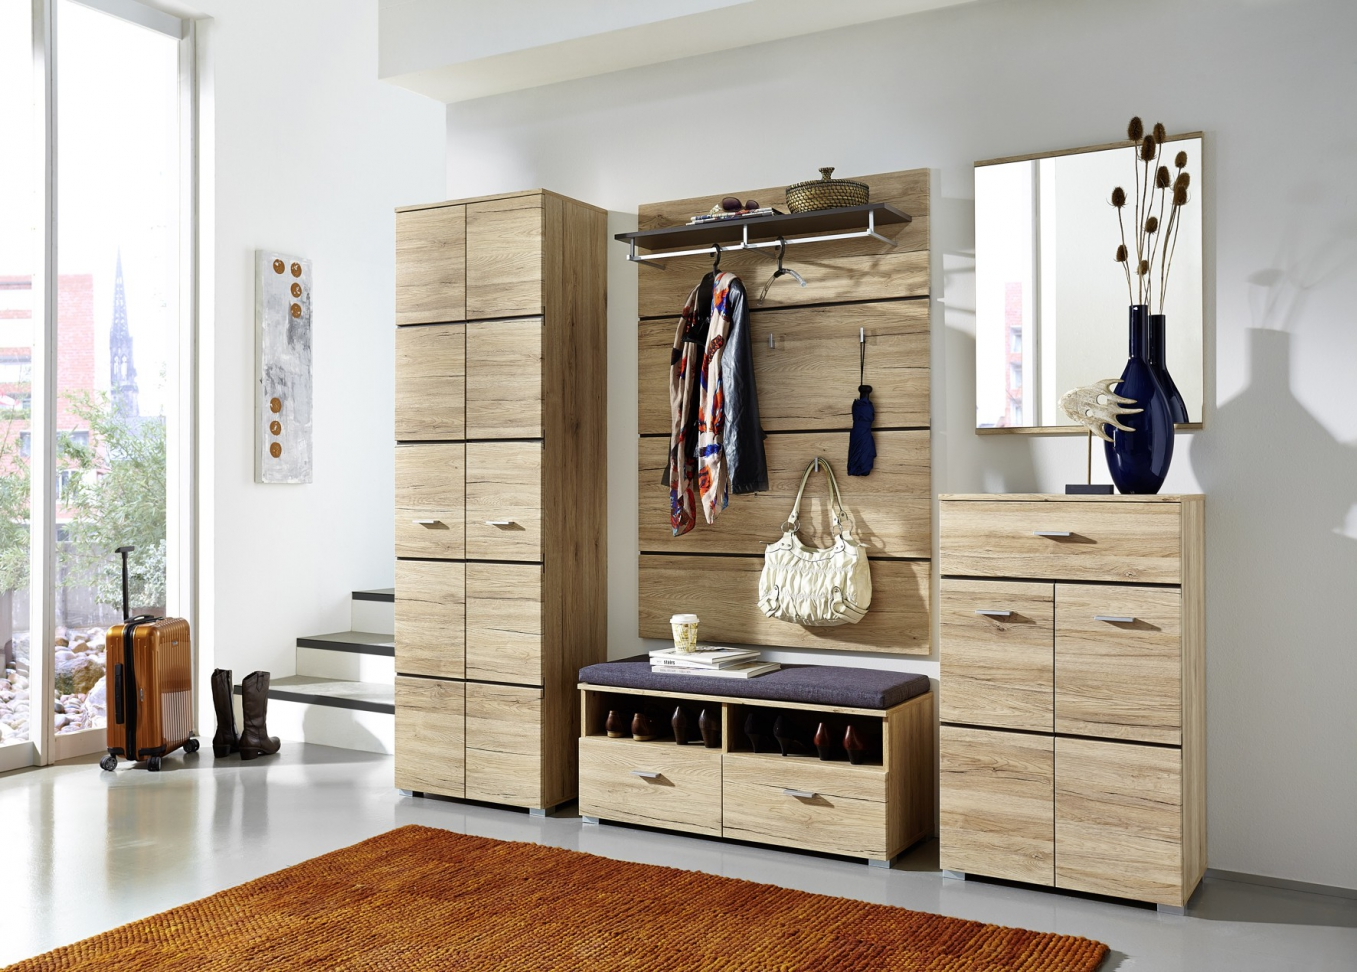 innostyle im dienste sch ner und moderner einrichtung. Black Bedroom Furniture Sets. Home Design Ideas